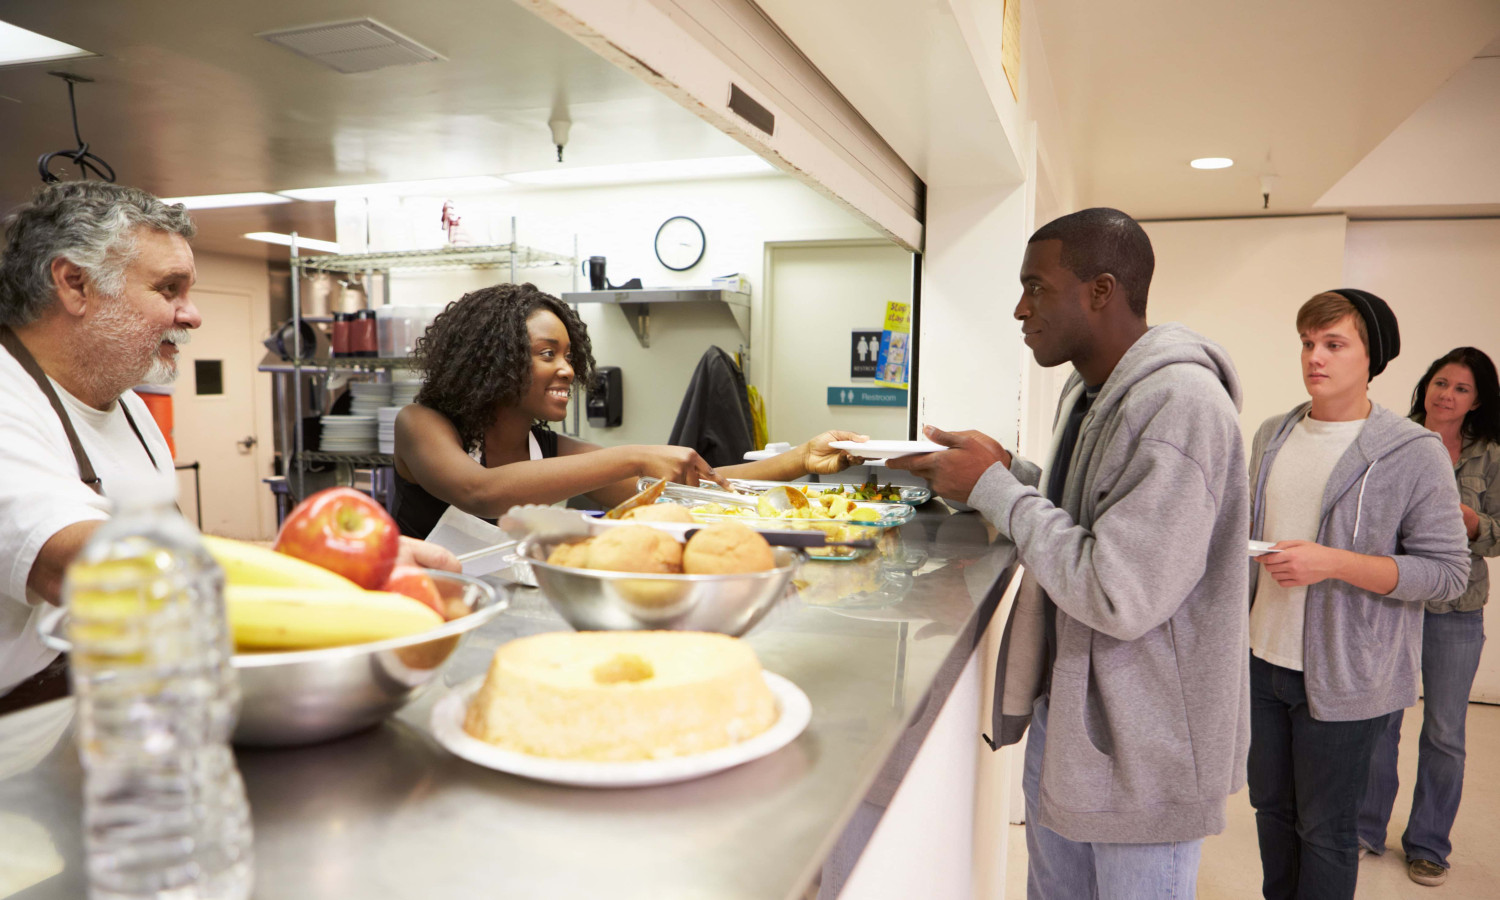 Keeping gourmet meals from going into the trash not only feeds those in need, it can also improve environmental outcomes and help California reach its waste diversion goal by 2020.